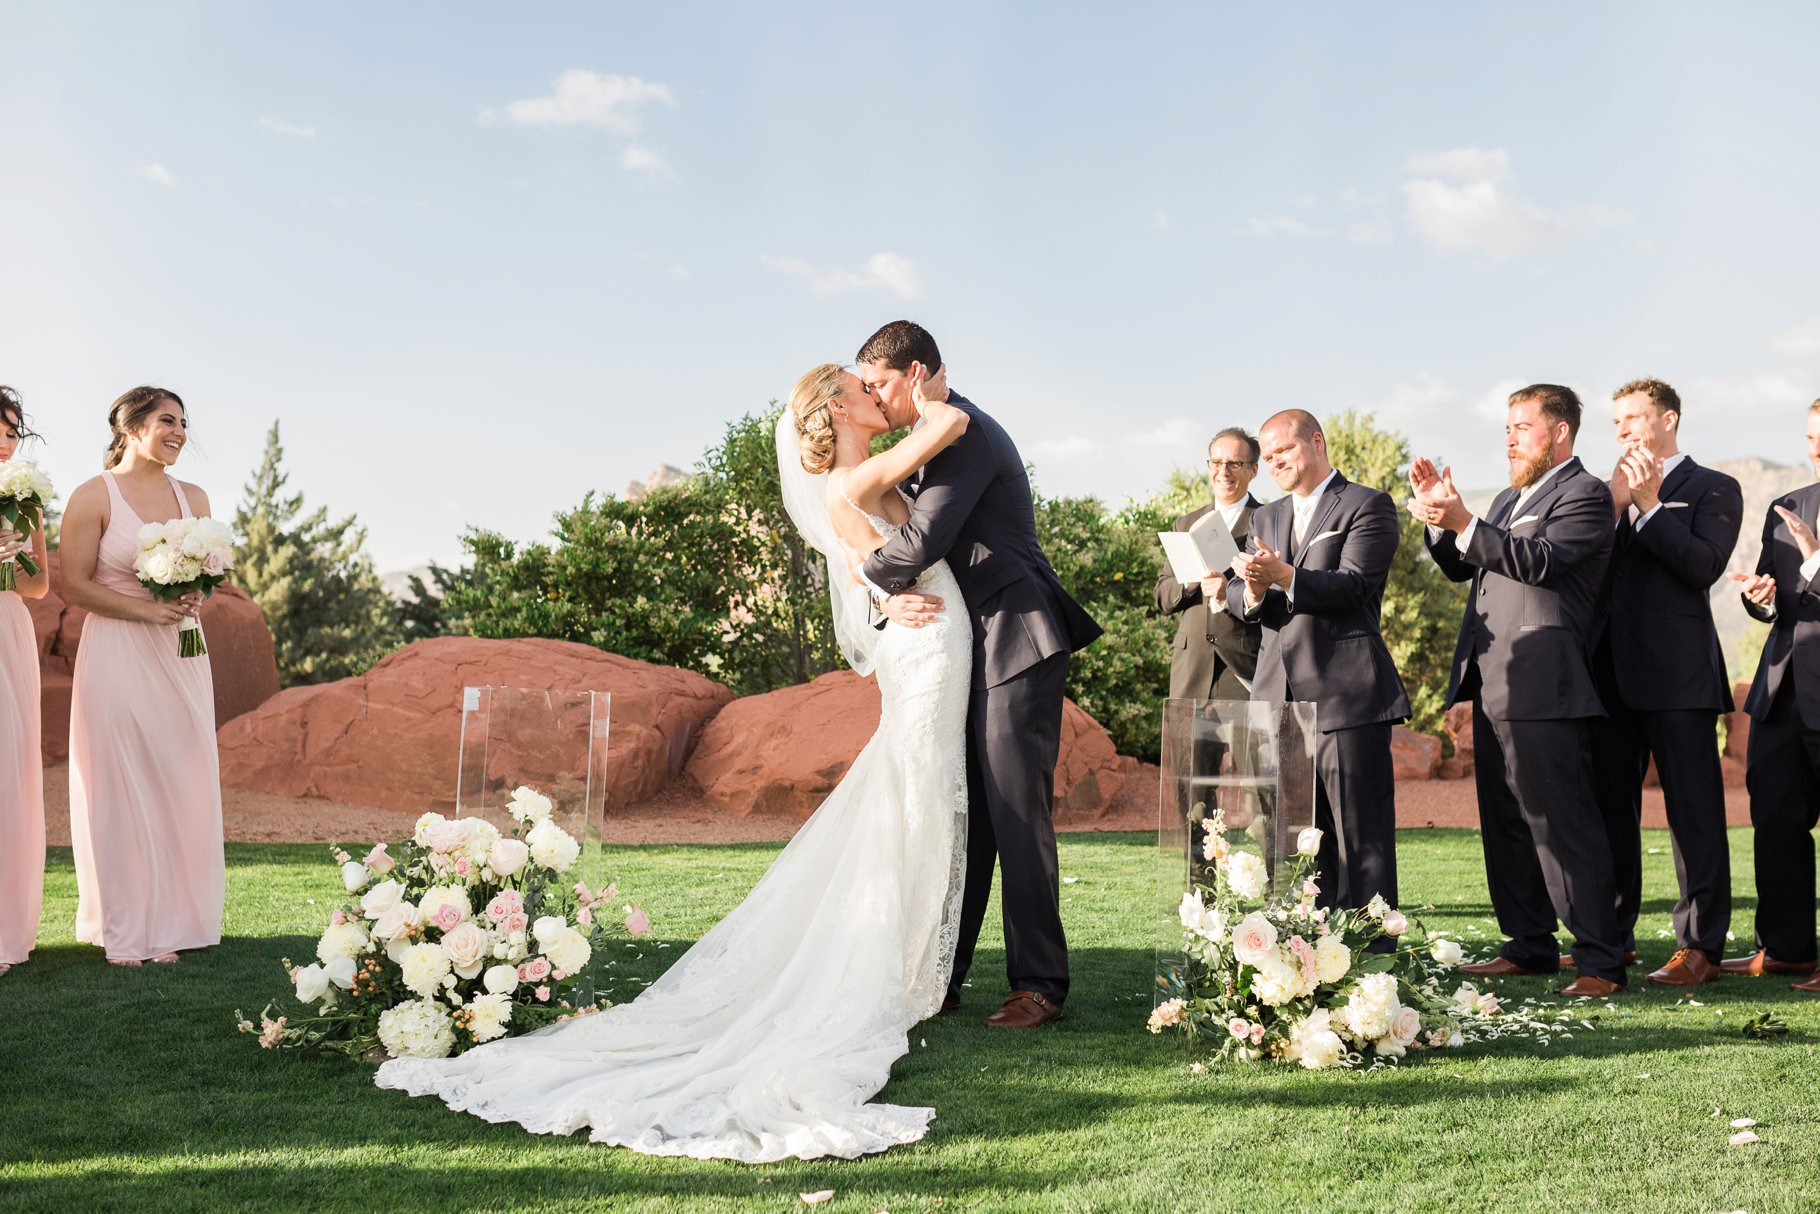 sedona wedding-11_GRETCHEN WAKEMAN PHOTOGRAPHY.jpg